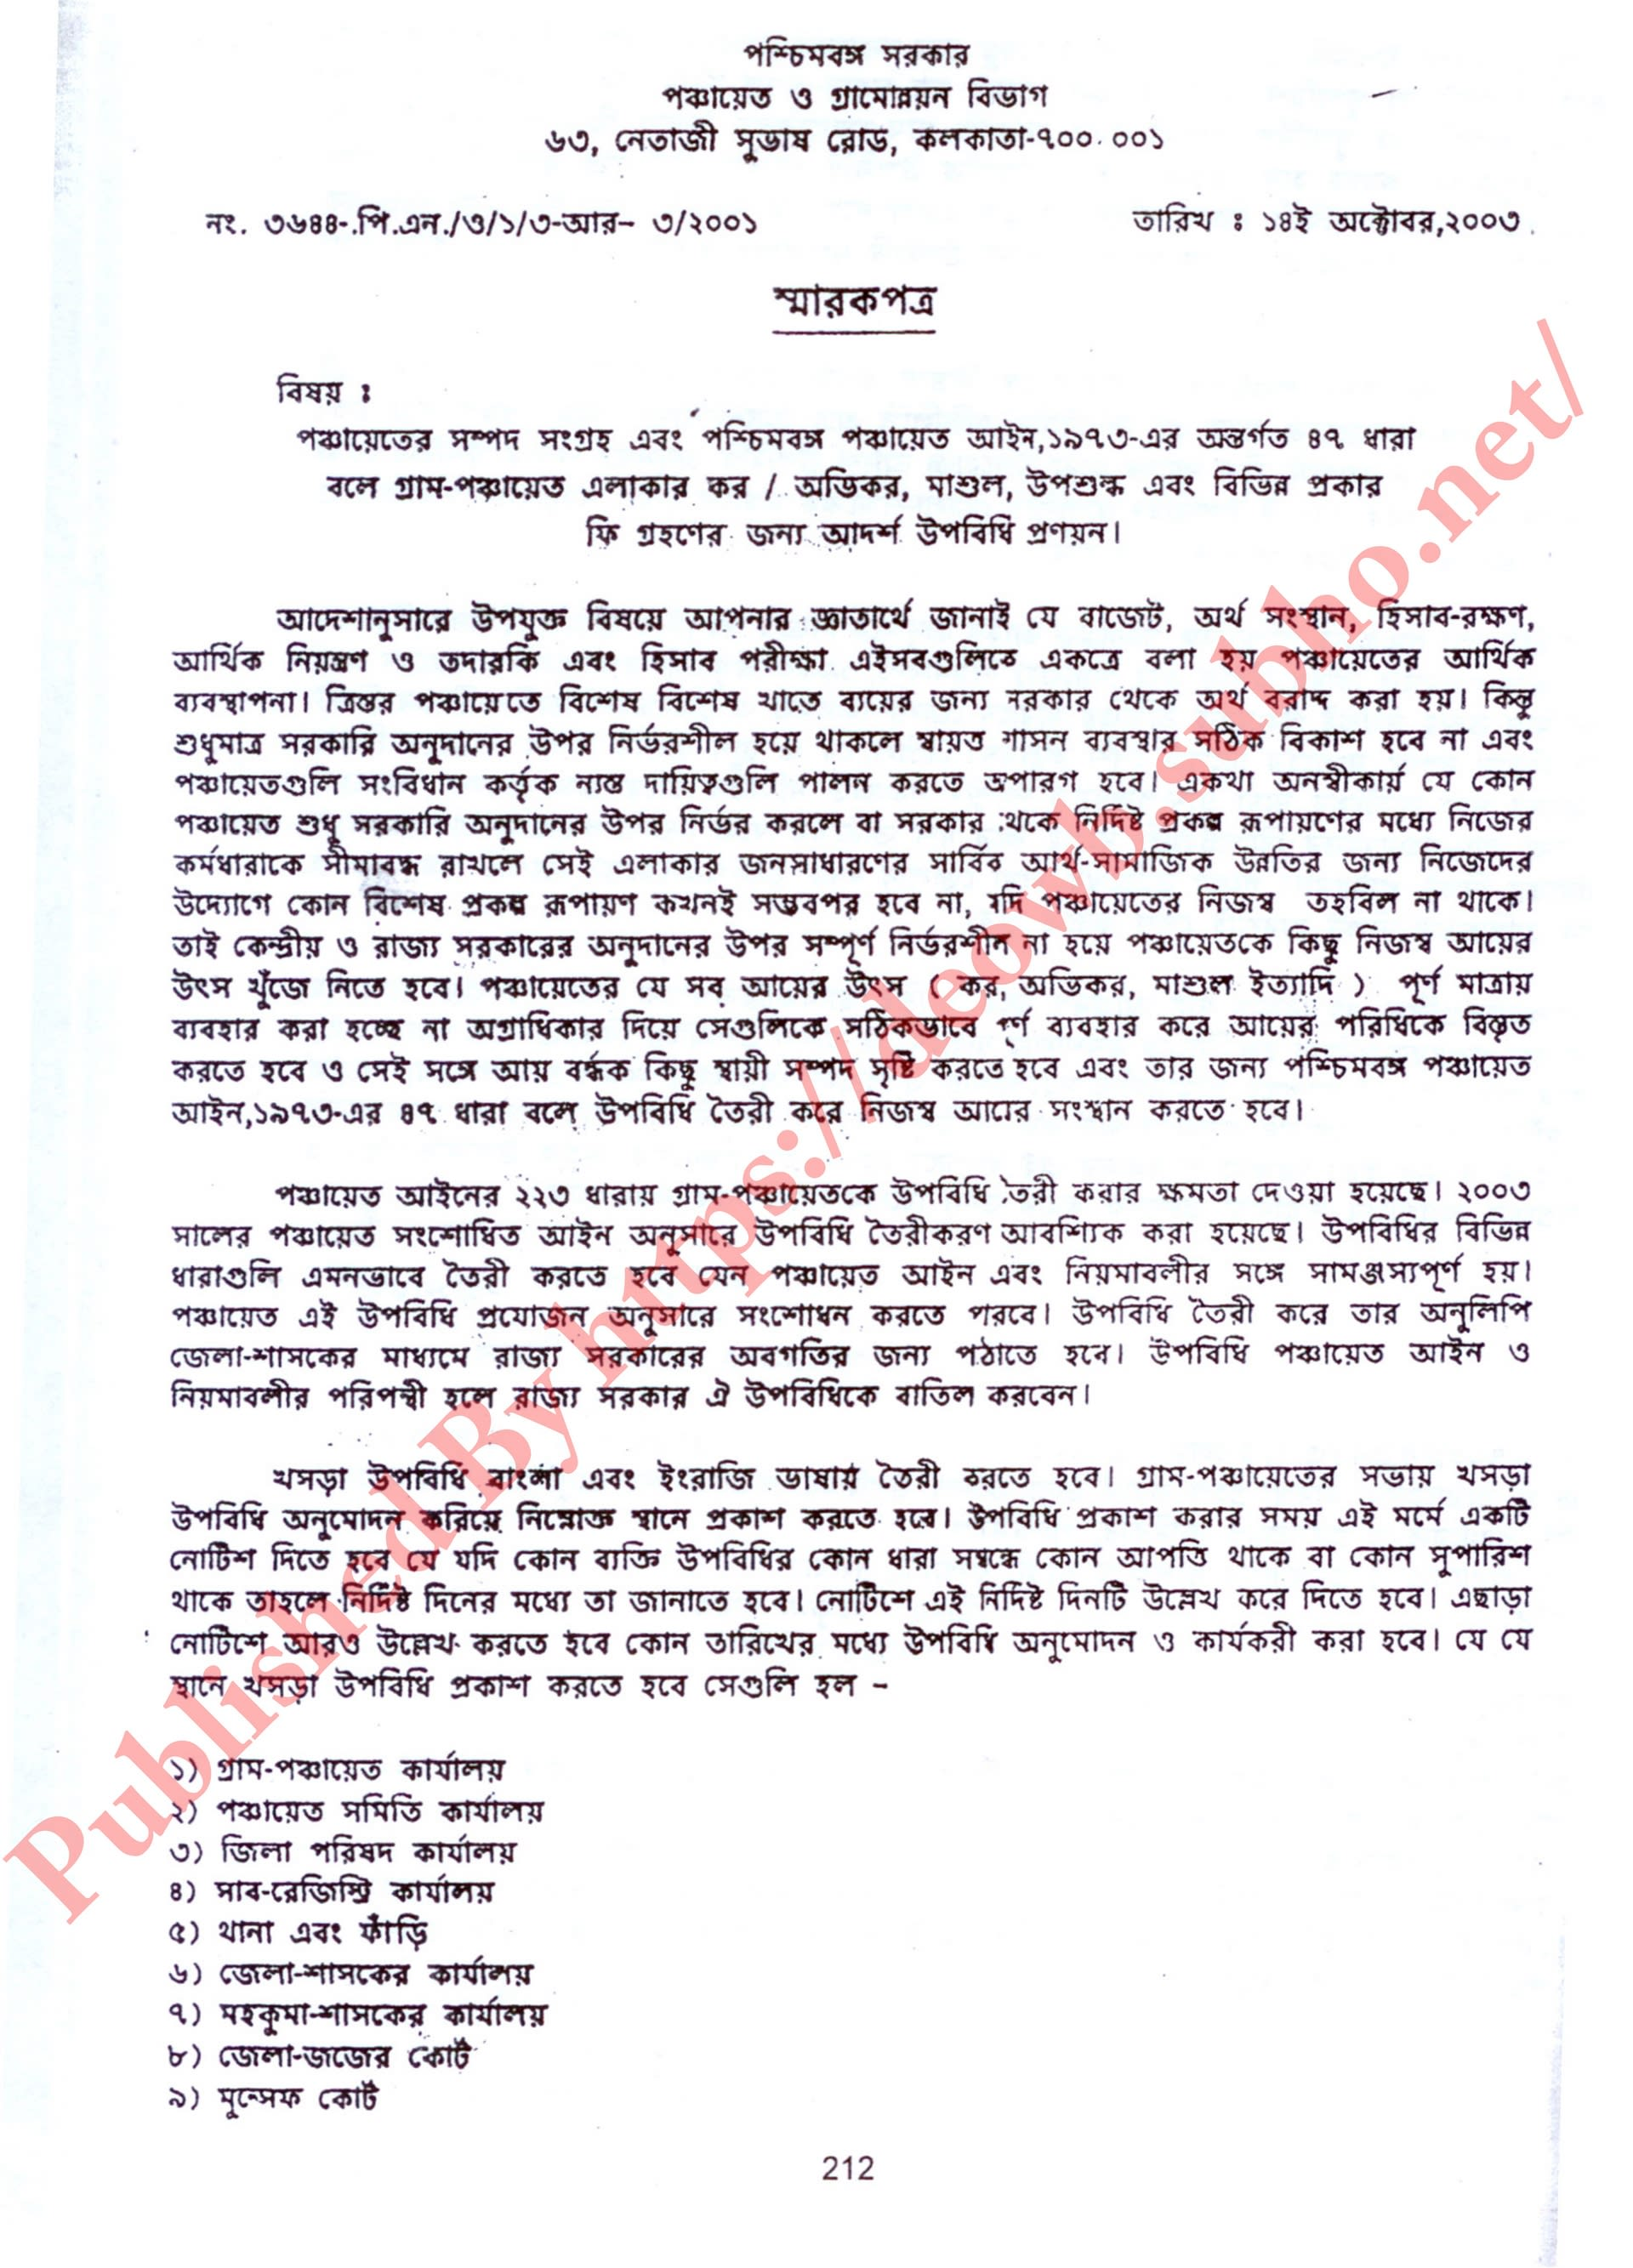 BY LAW UPOBIDHI GUIDELINES 2003 - BENGALI